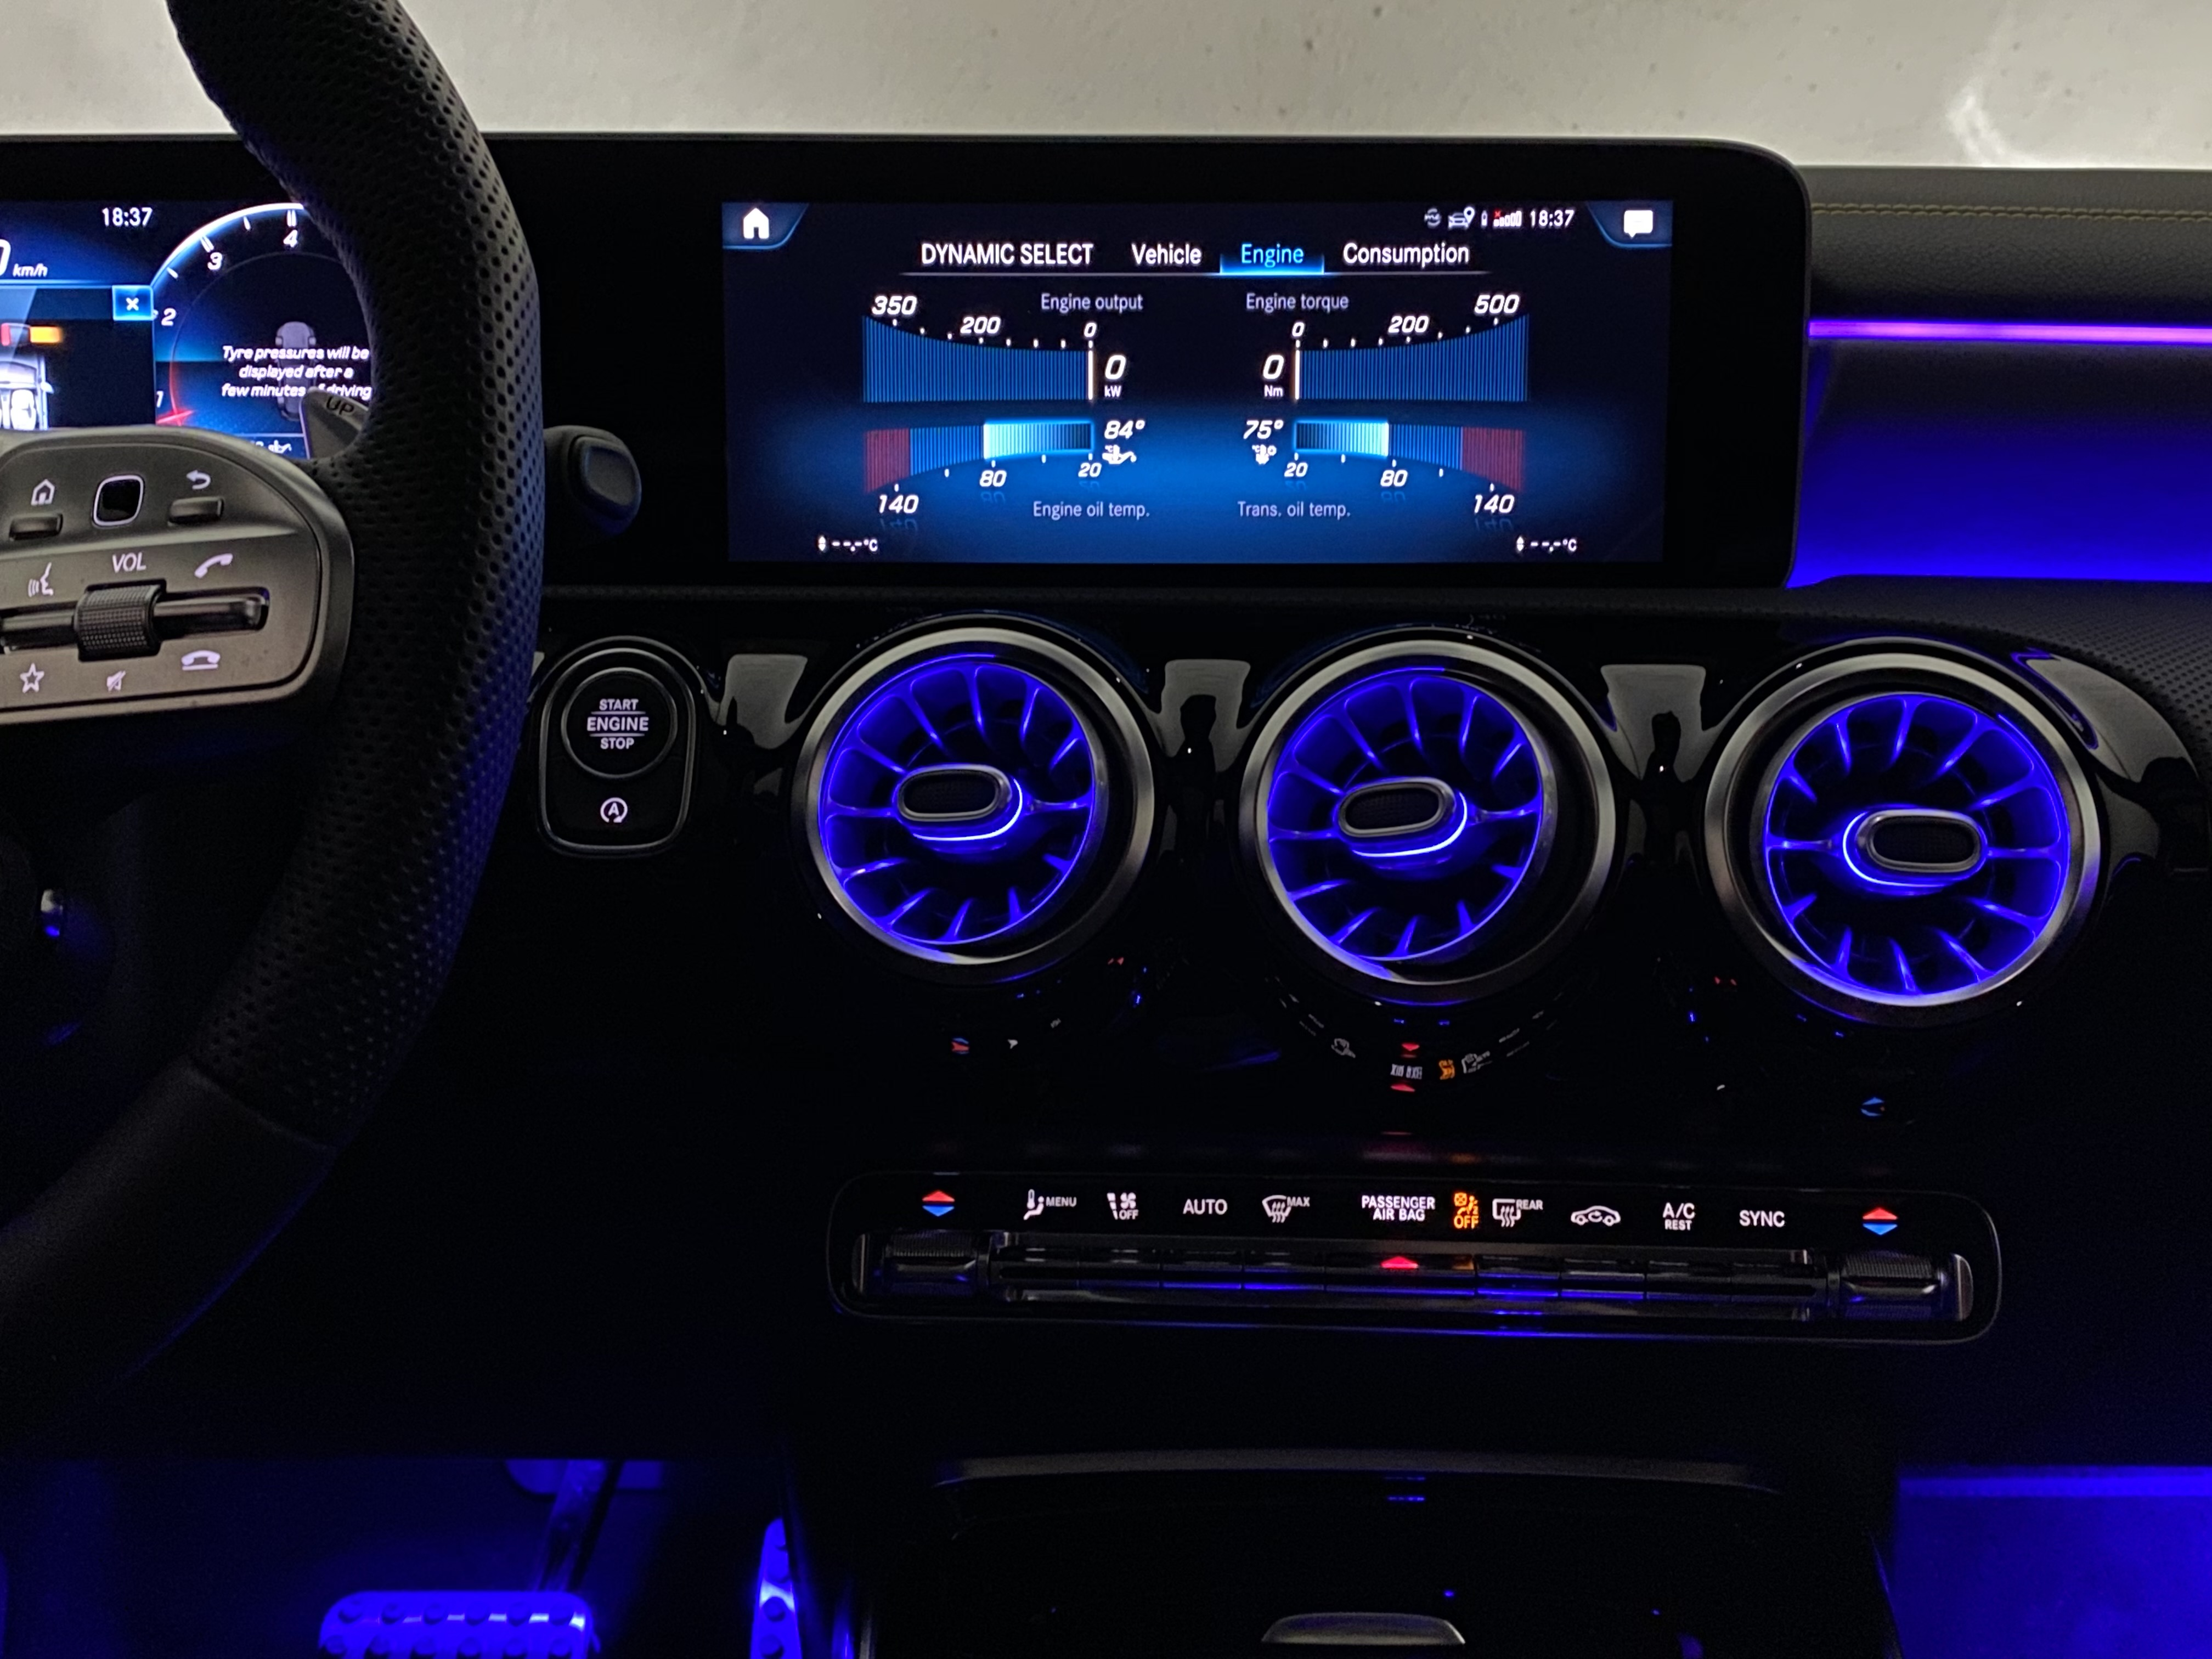 a45s_interior_front07.jpg